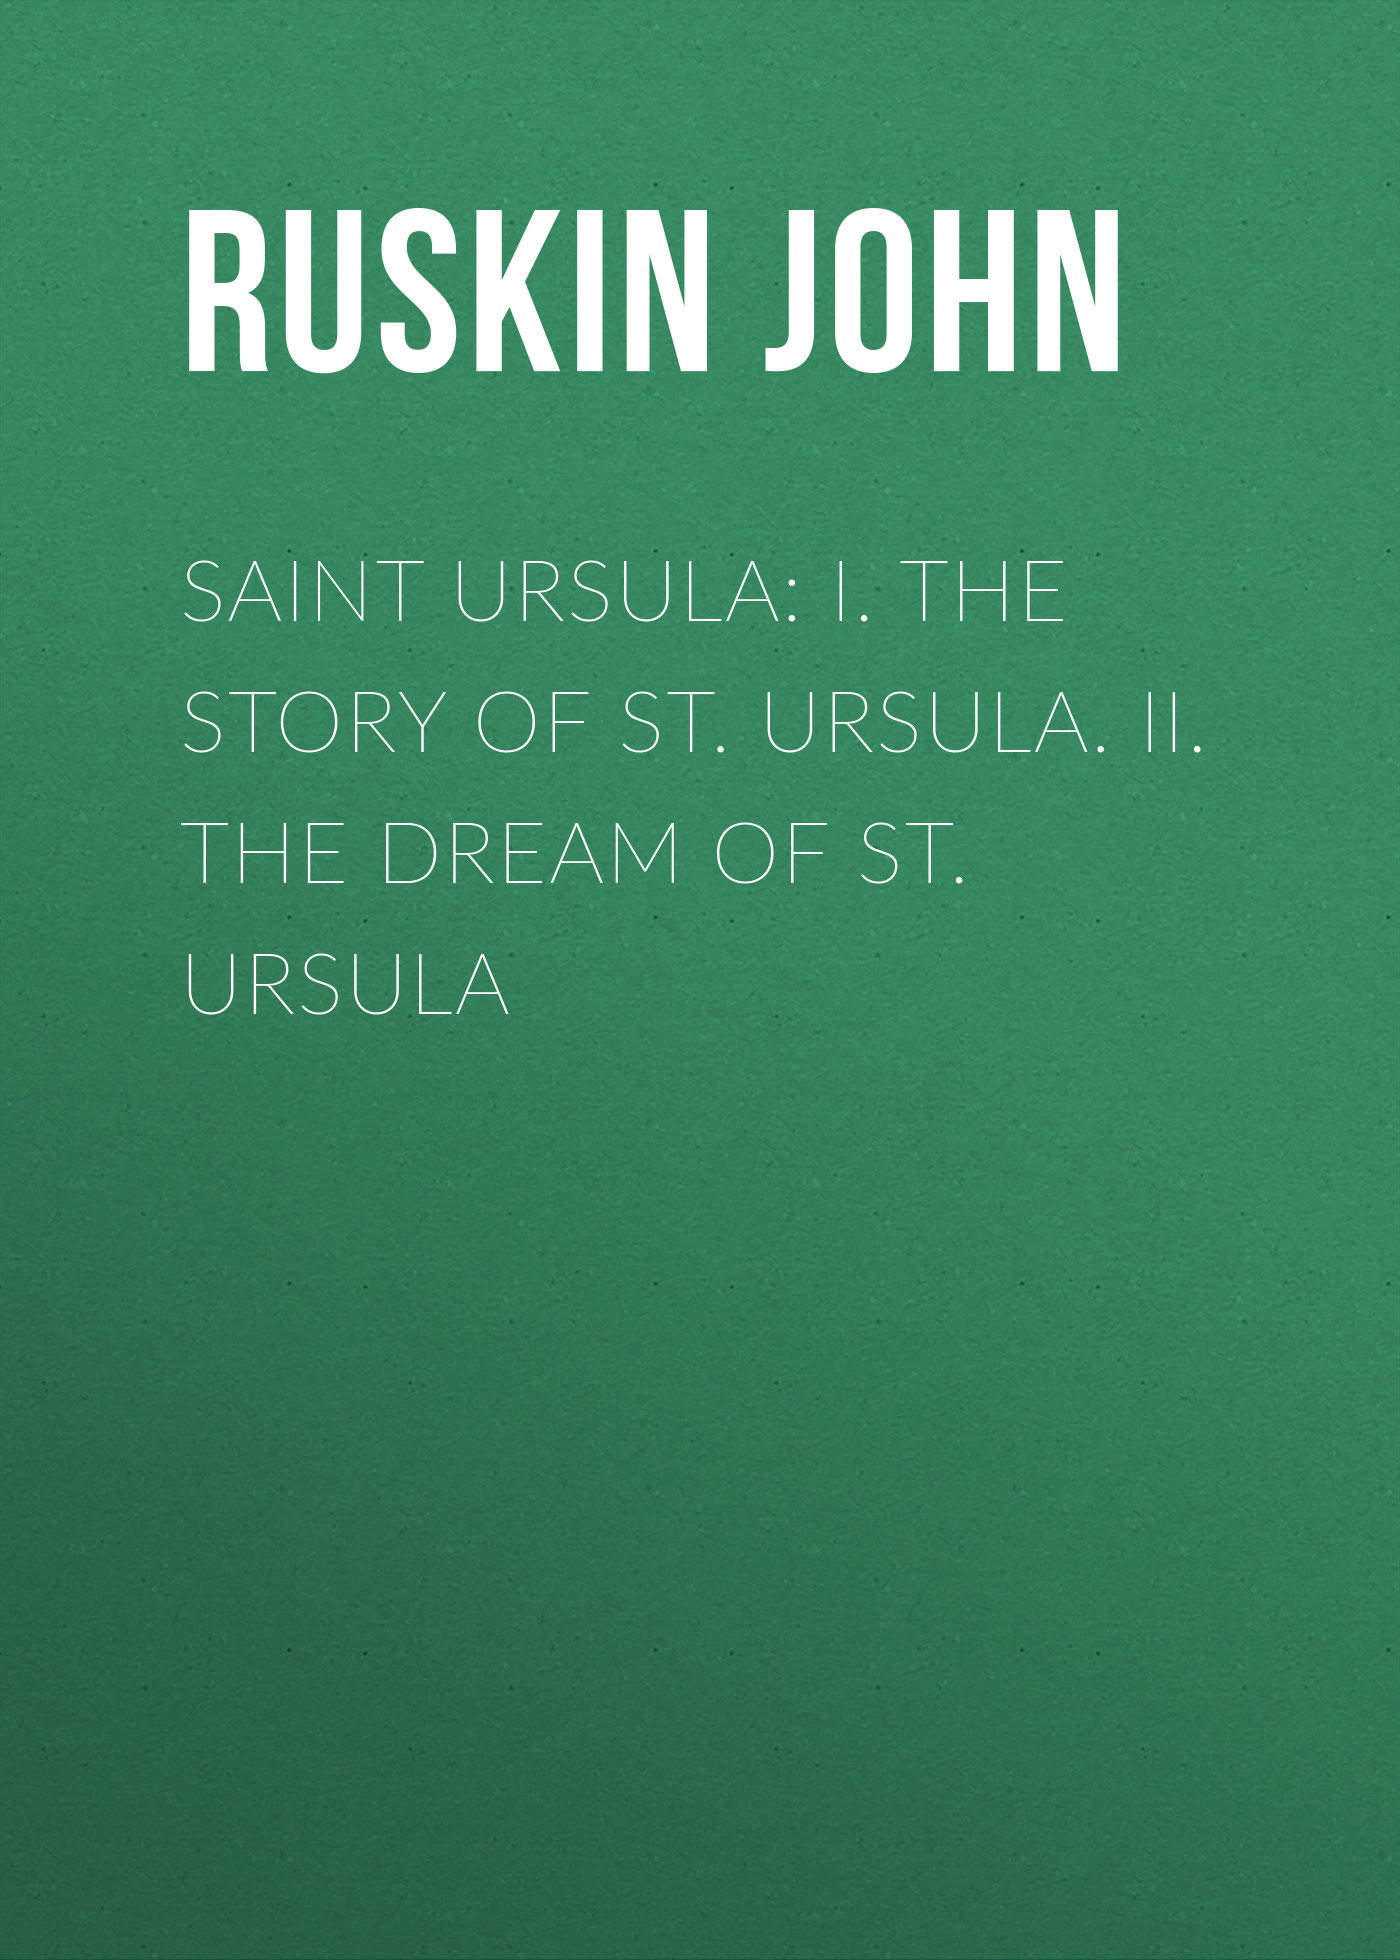 купить Ruskin John Saint Ursula: I. The Story of St. Ursula. II. The Dream of St. Ursula по цене 0 рублей